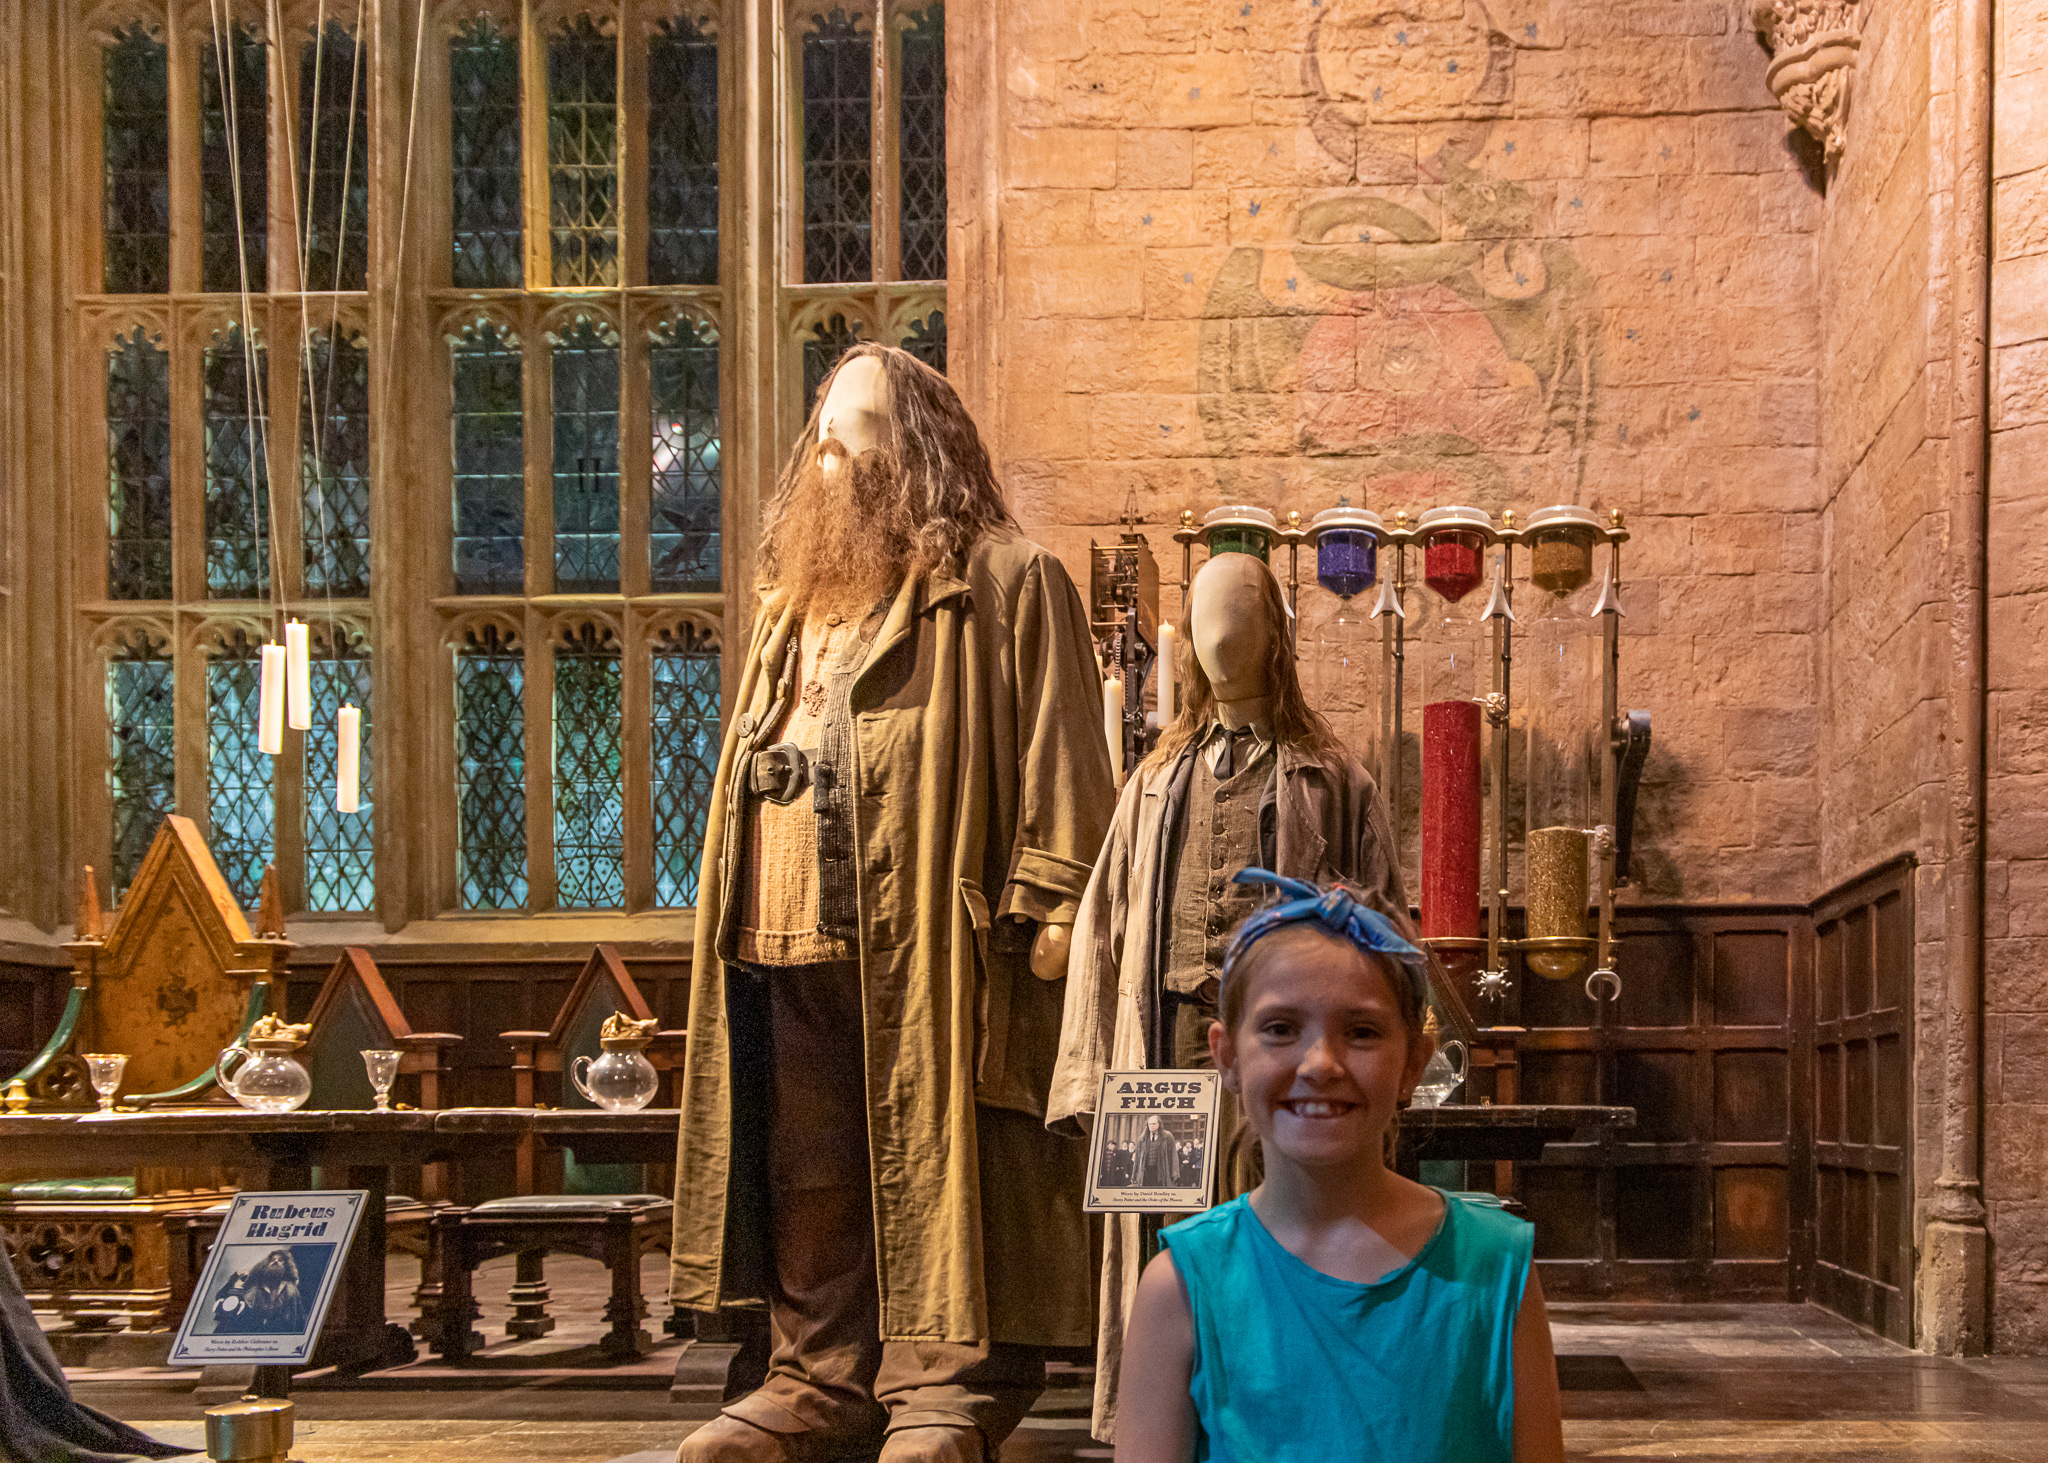 Belle with Hagrid and Filch